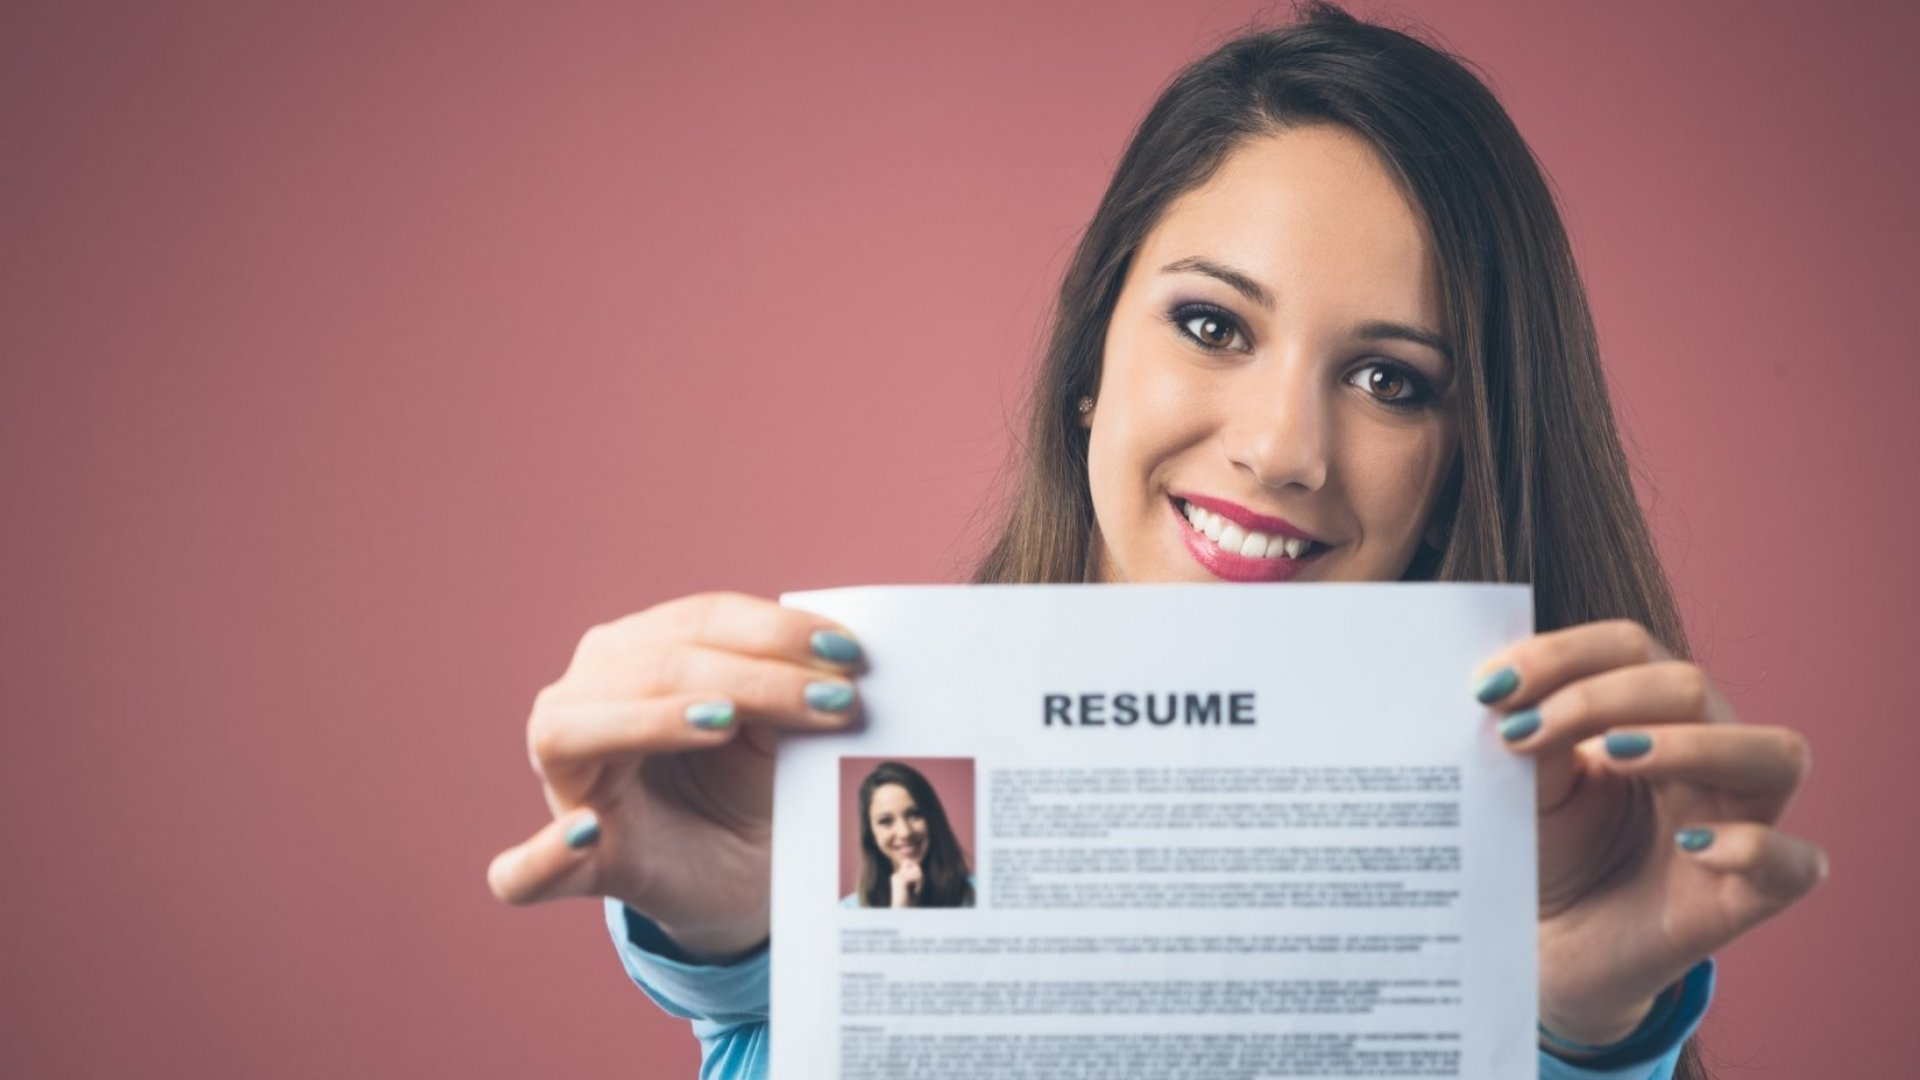 The 1 Big Mistake Millennials Make on Their Resumes (and How You Can Avoid Making It)